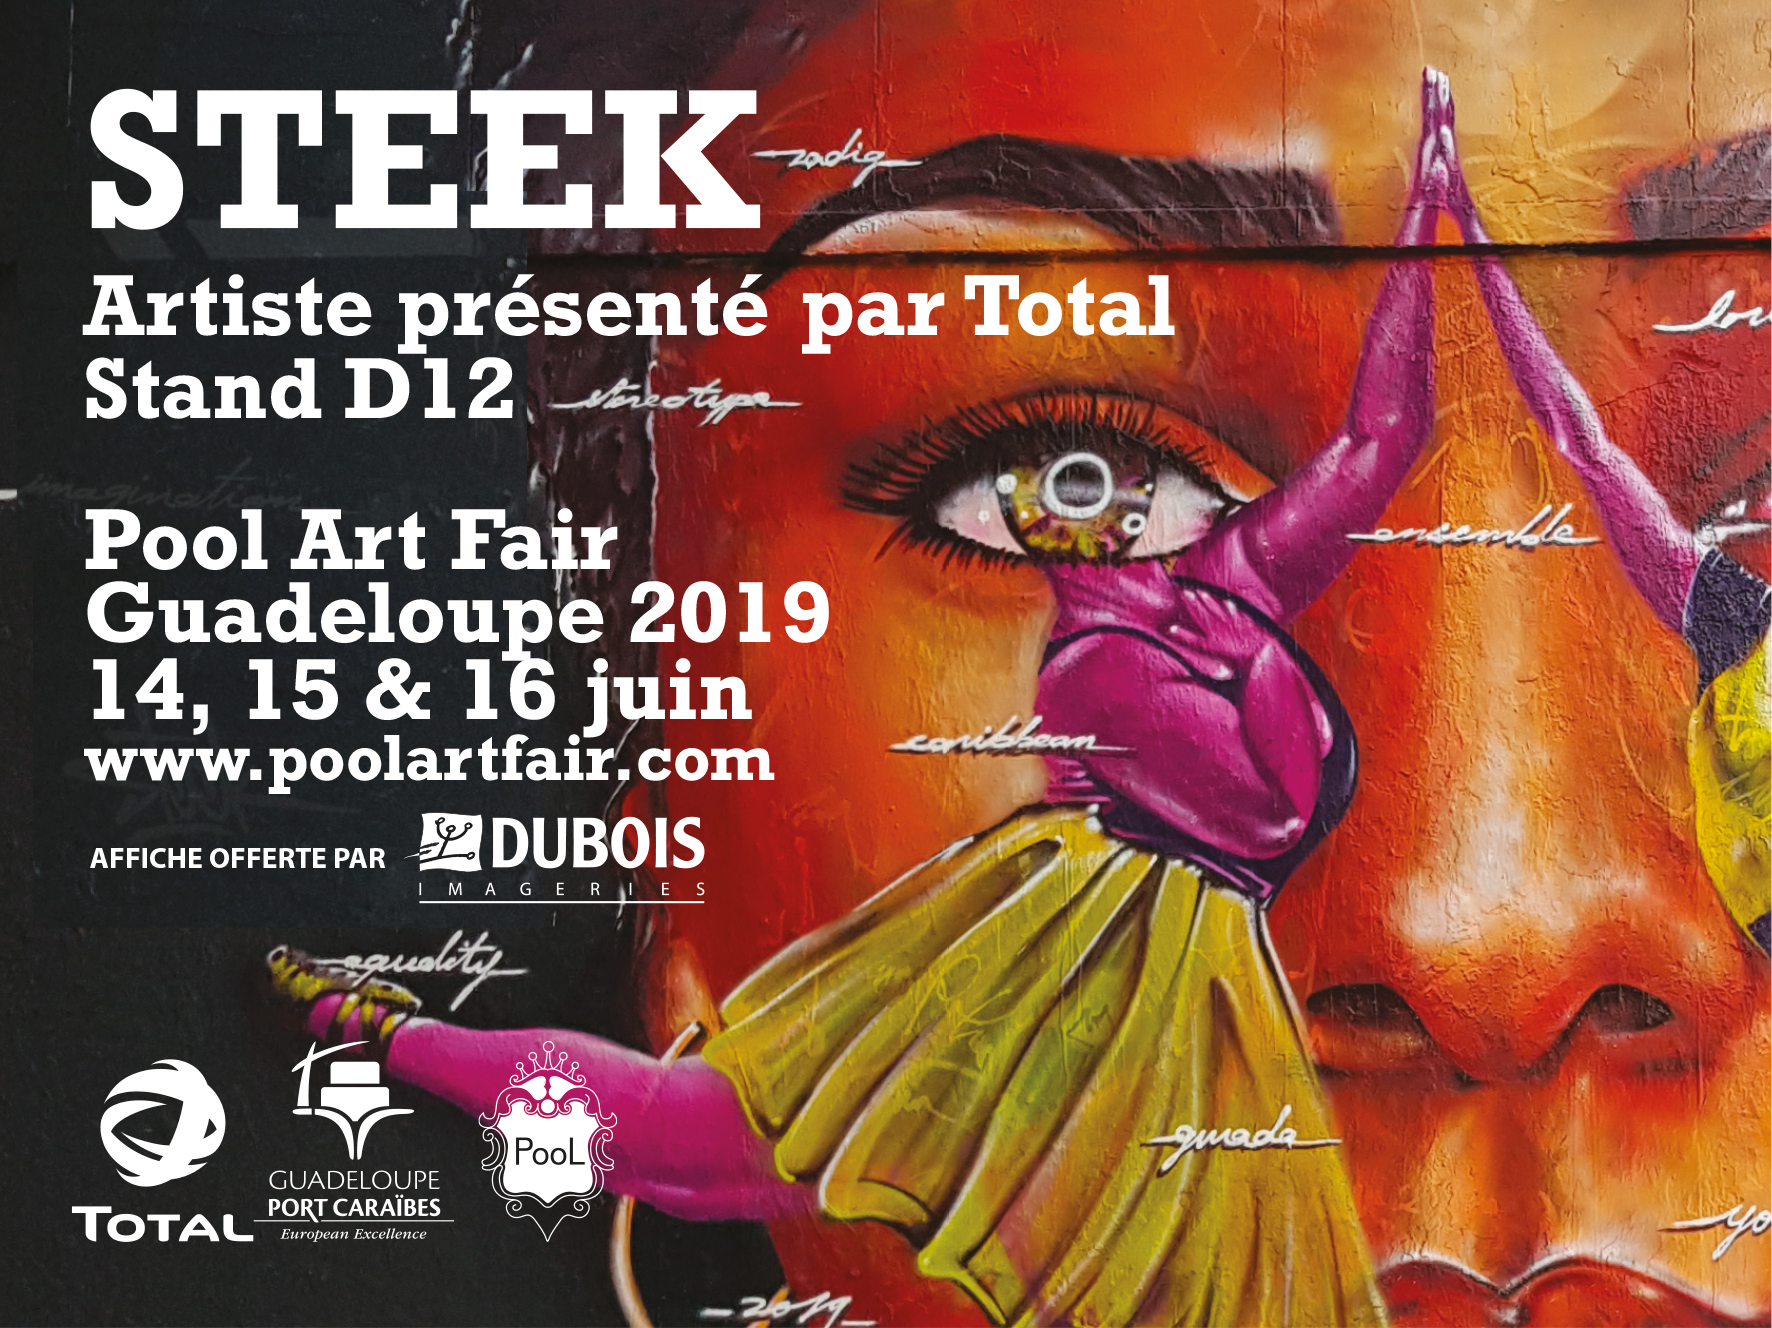 Pool Art Fair 2019, les affiches 4x3 de l'artiste Steek sont offertes